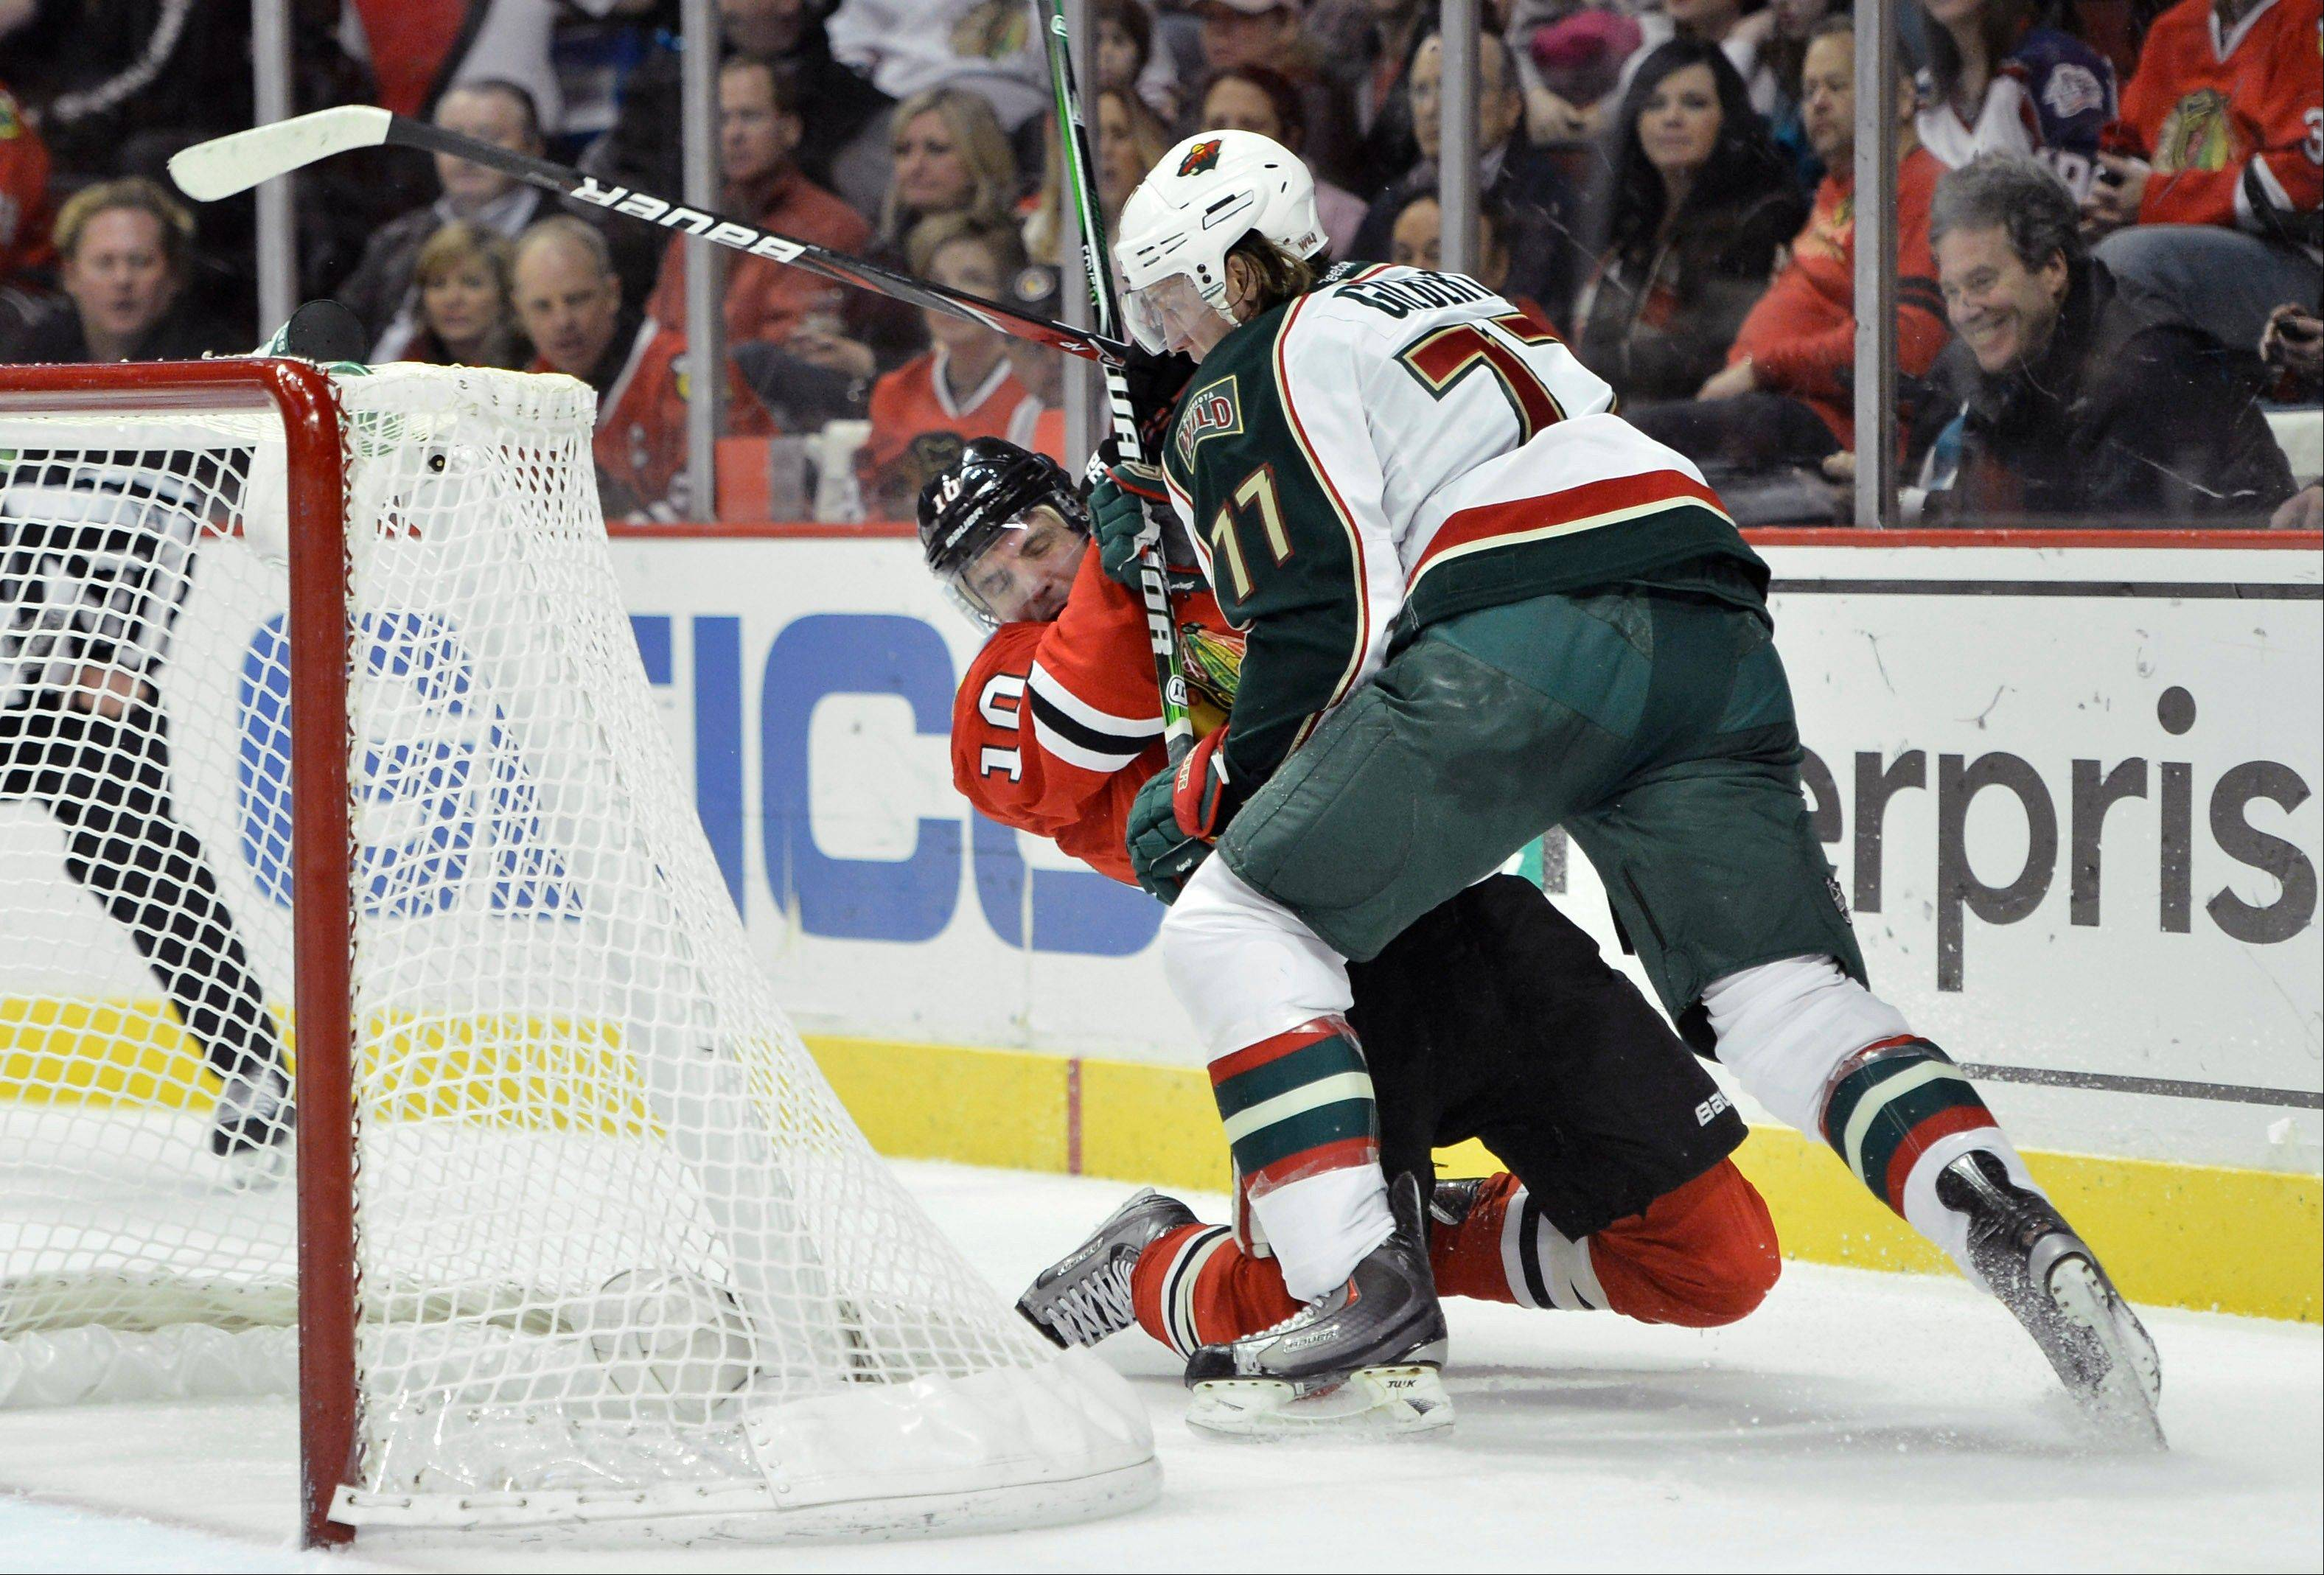 Minnesota Wild defenseman Tom Gilbert, right, takes down Chicago Blackhawks left wing Patrick Sharp during the second period.